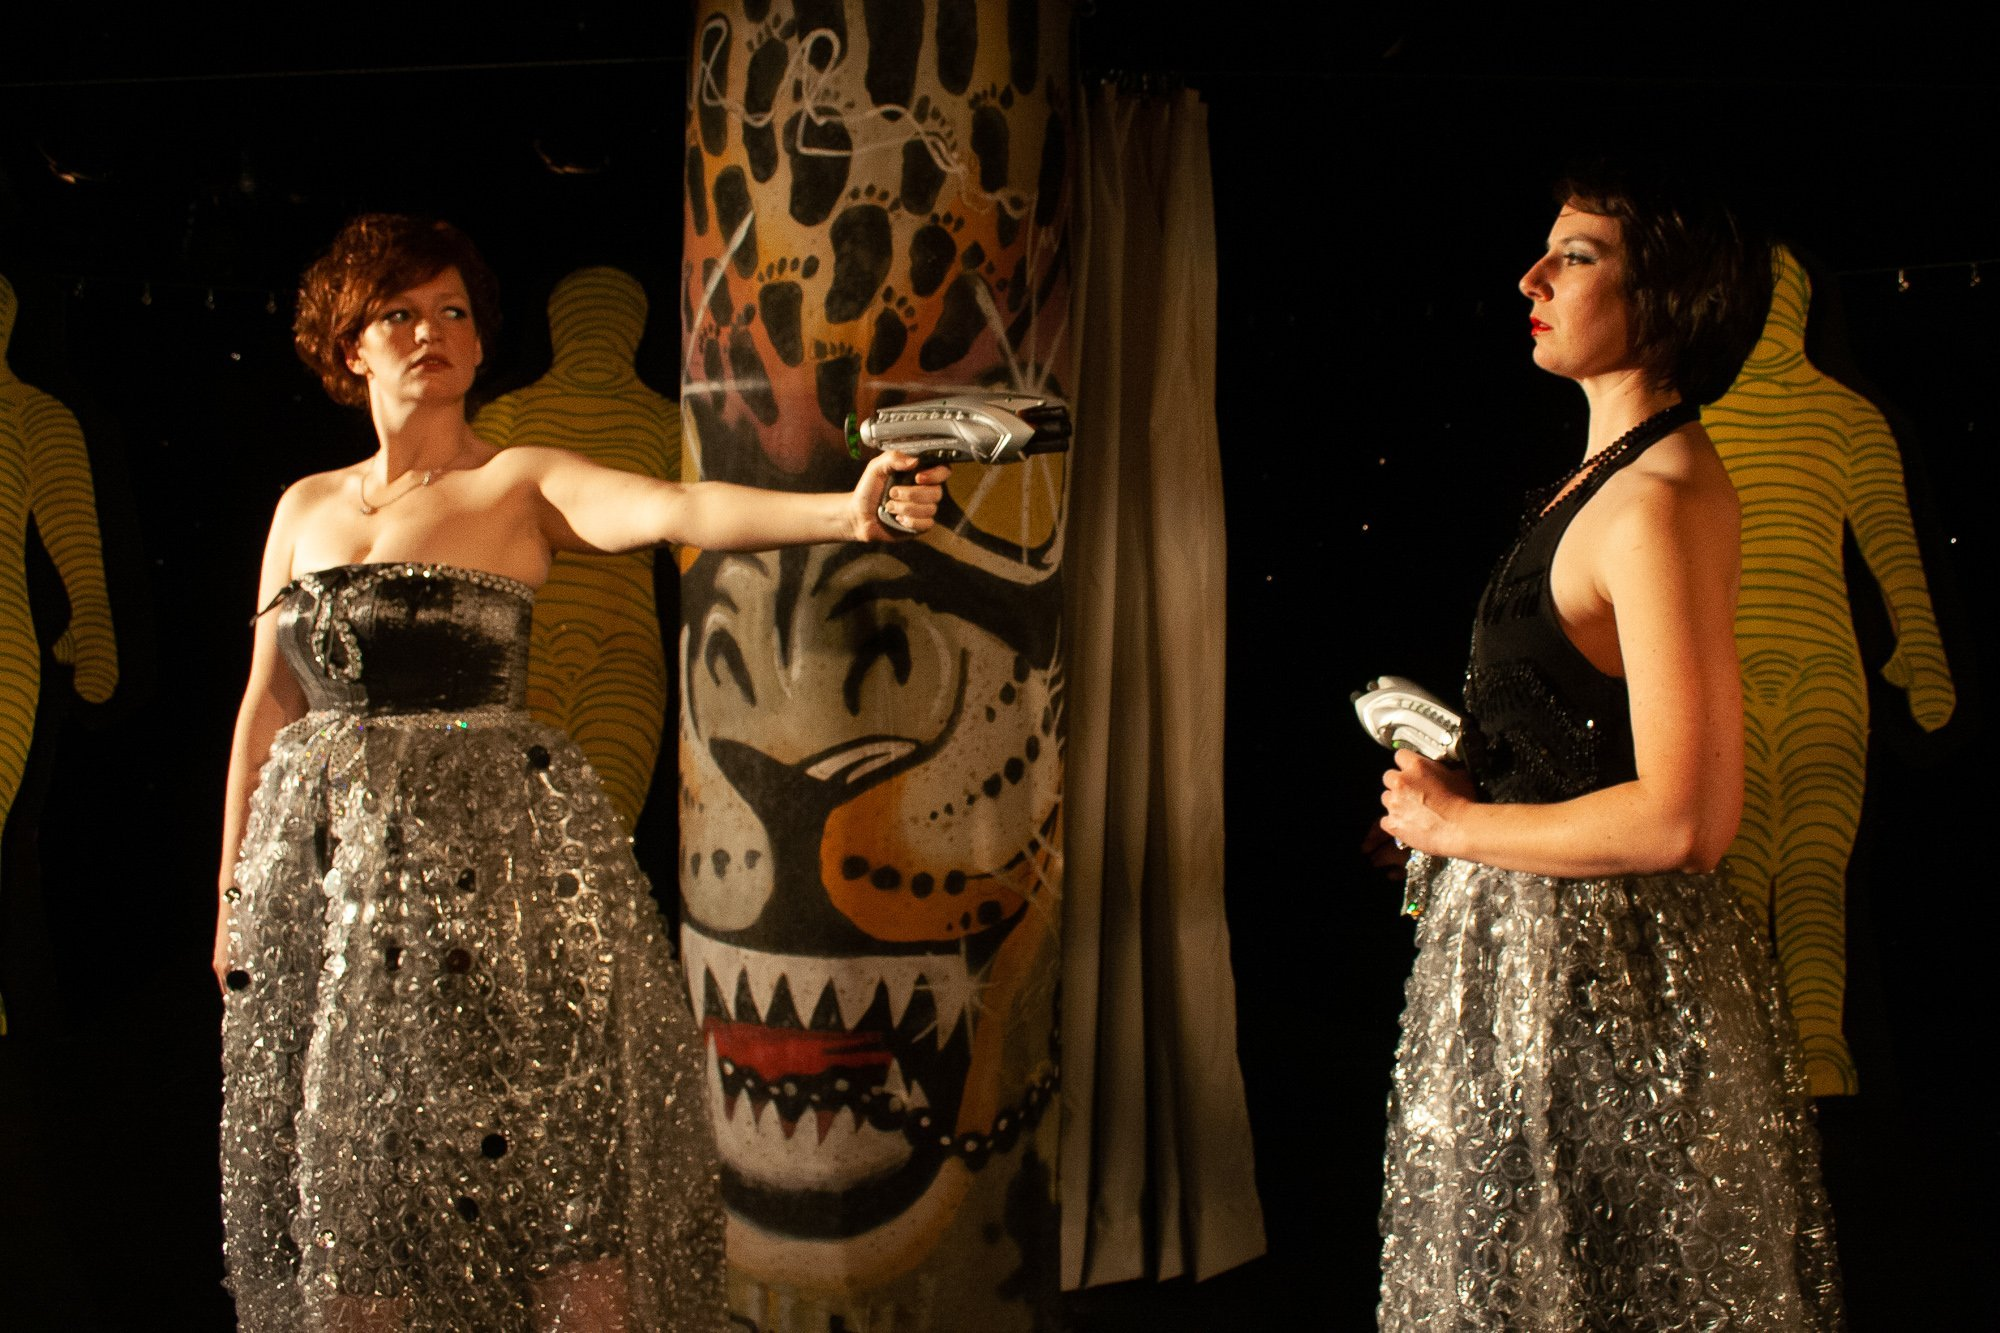 Port Twilight or The History of Science at Undermain Theatre